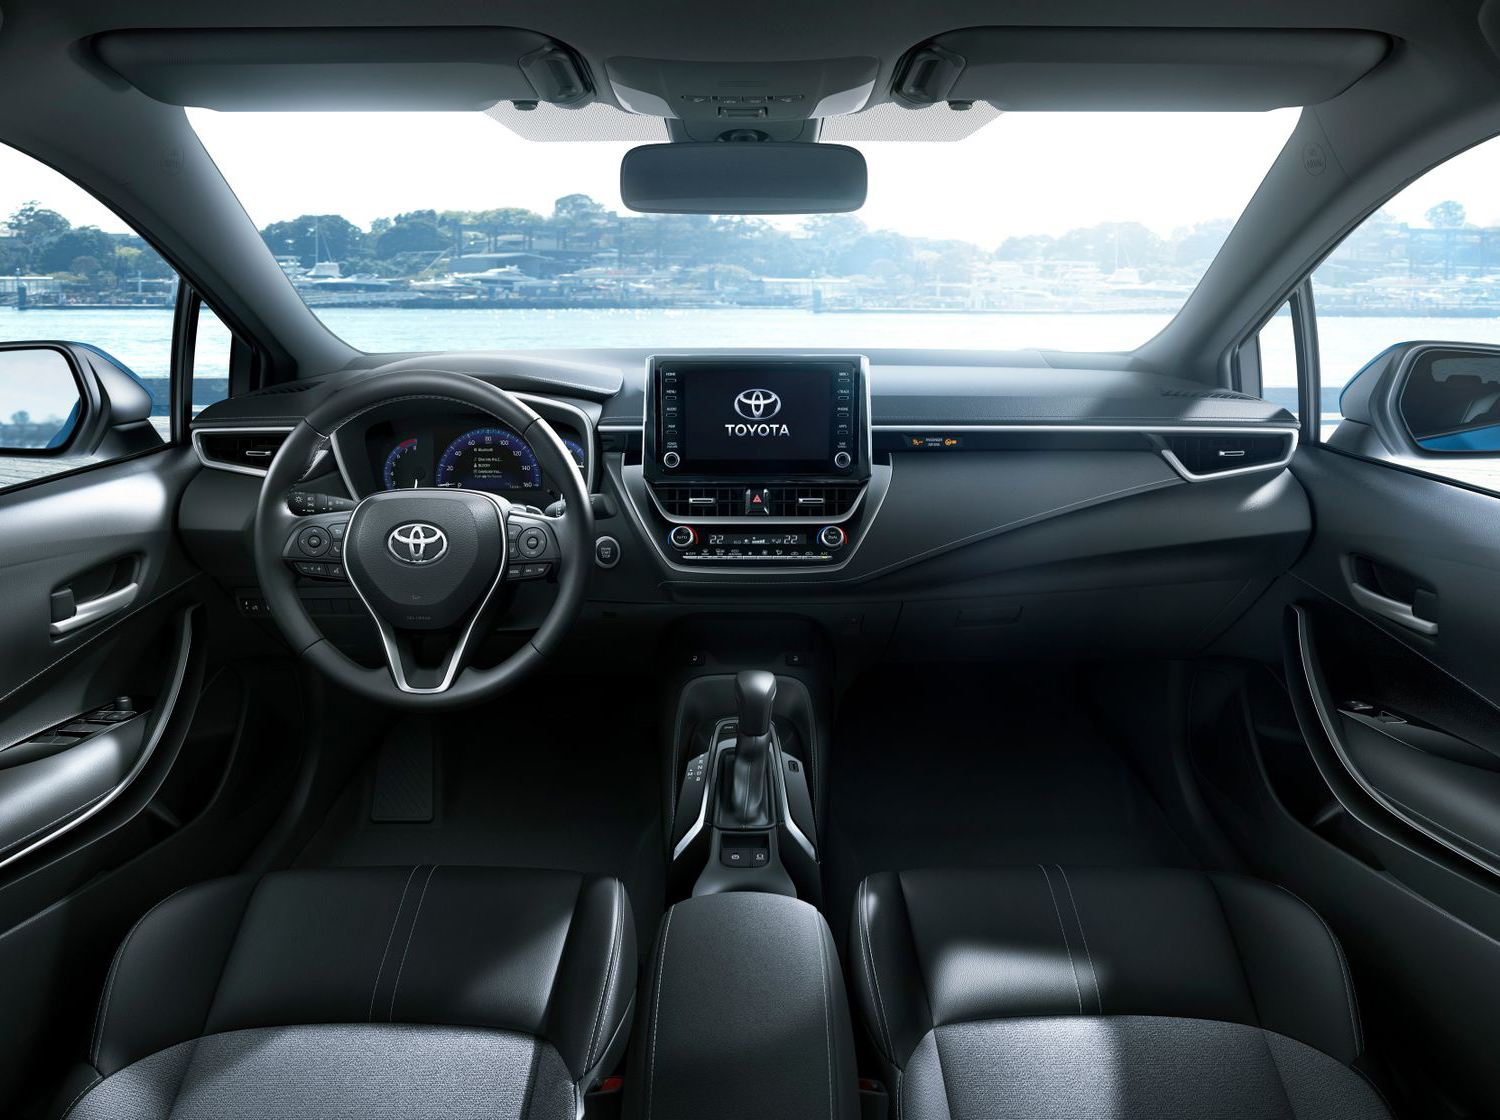 2019 Corolla Hatchback Interior at Milton Toyota